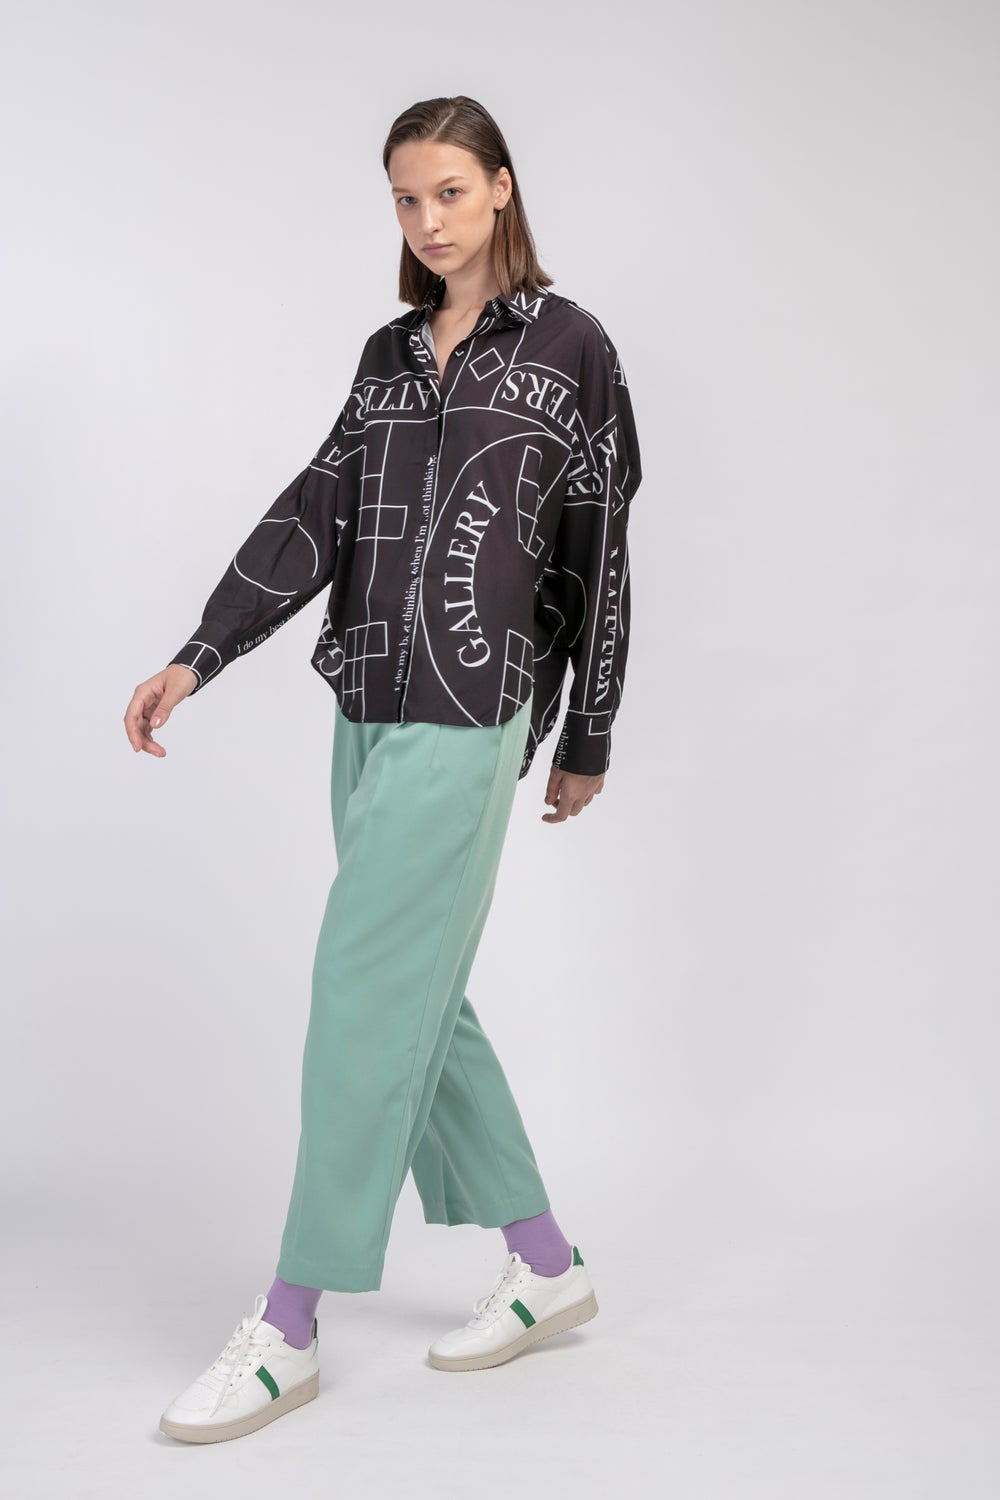 Loose Fit Capri Shirt with Pattern 'Not' / Black